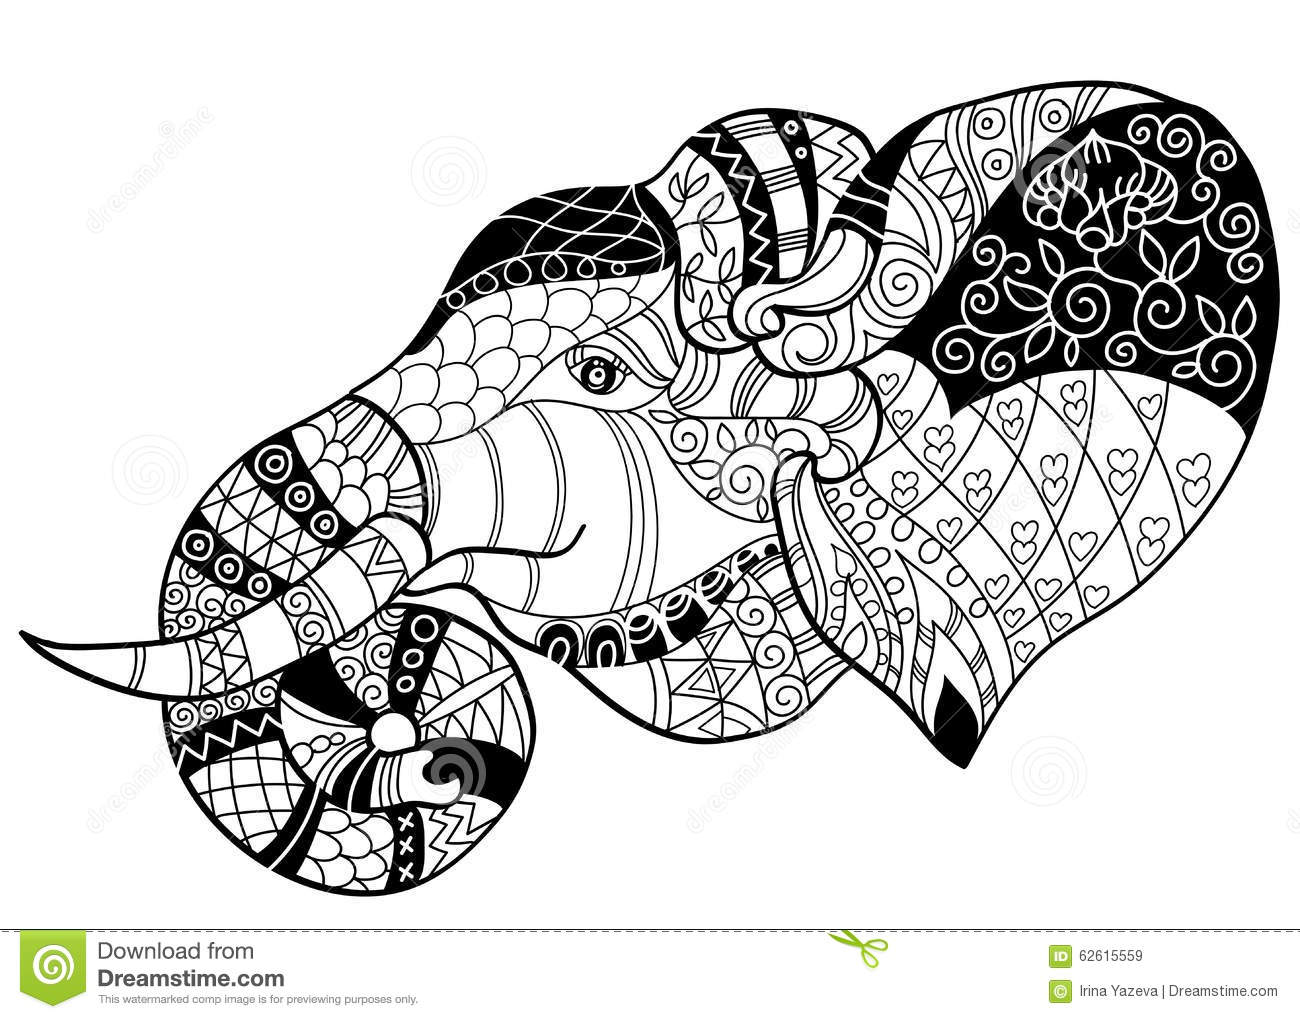 Animated Elephant Coloring Pages